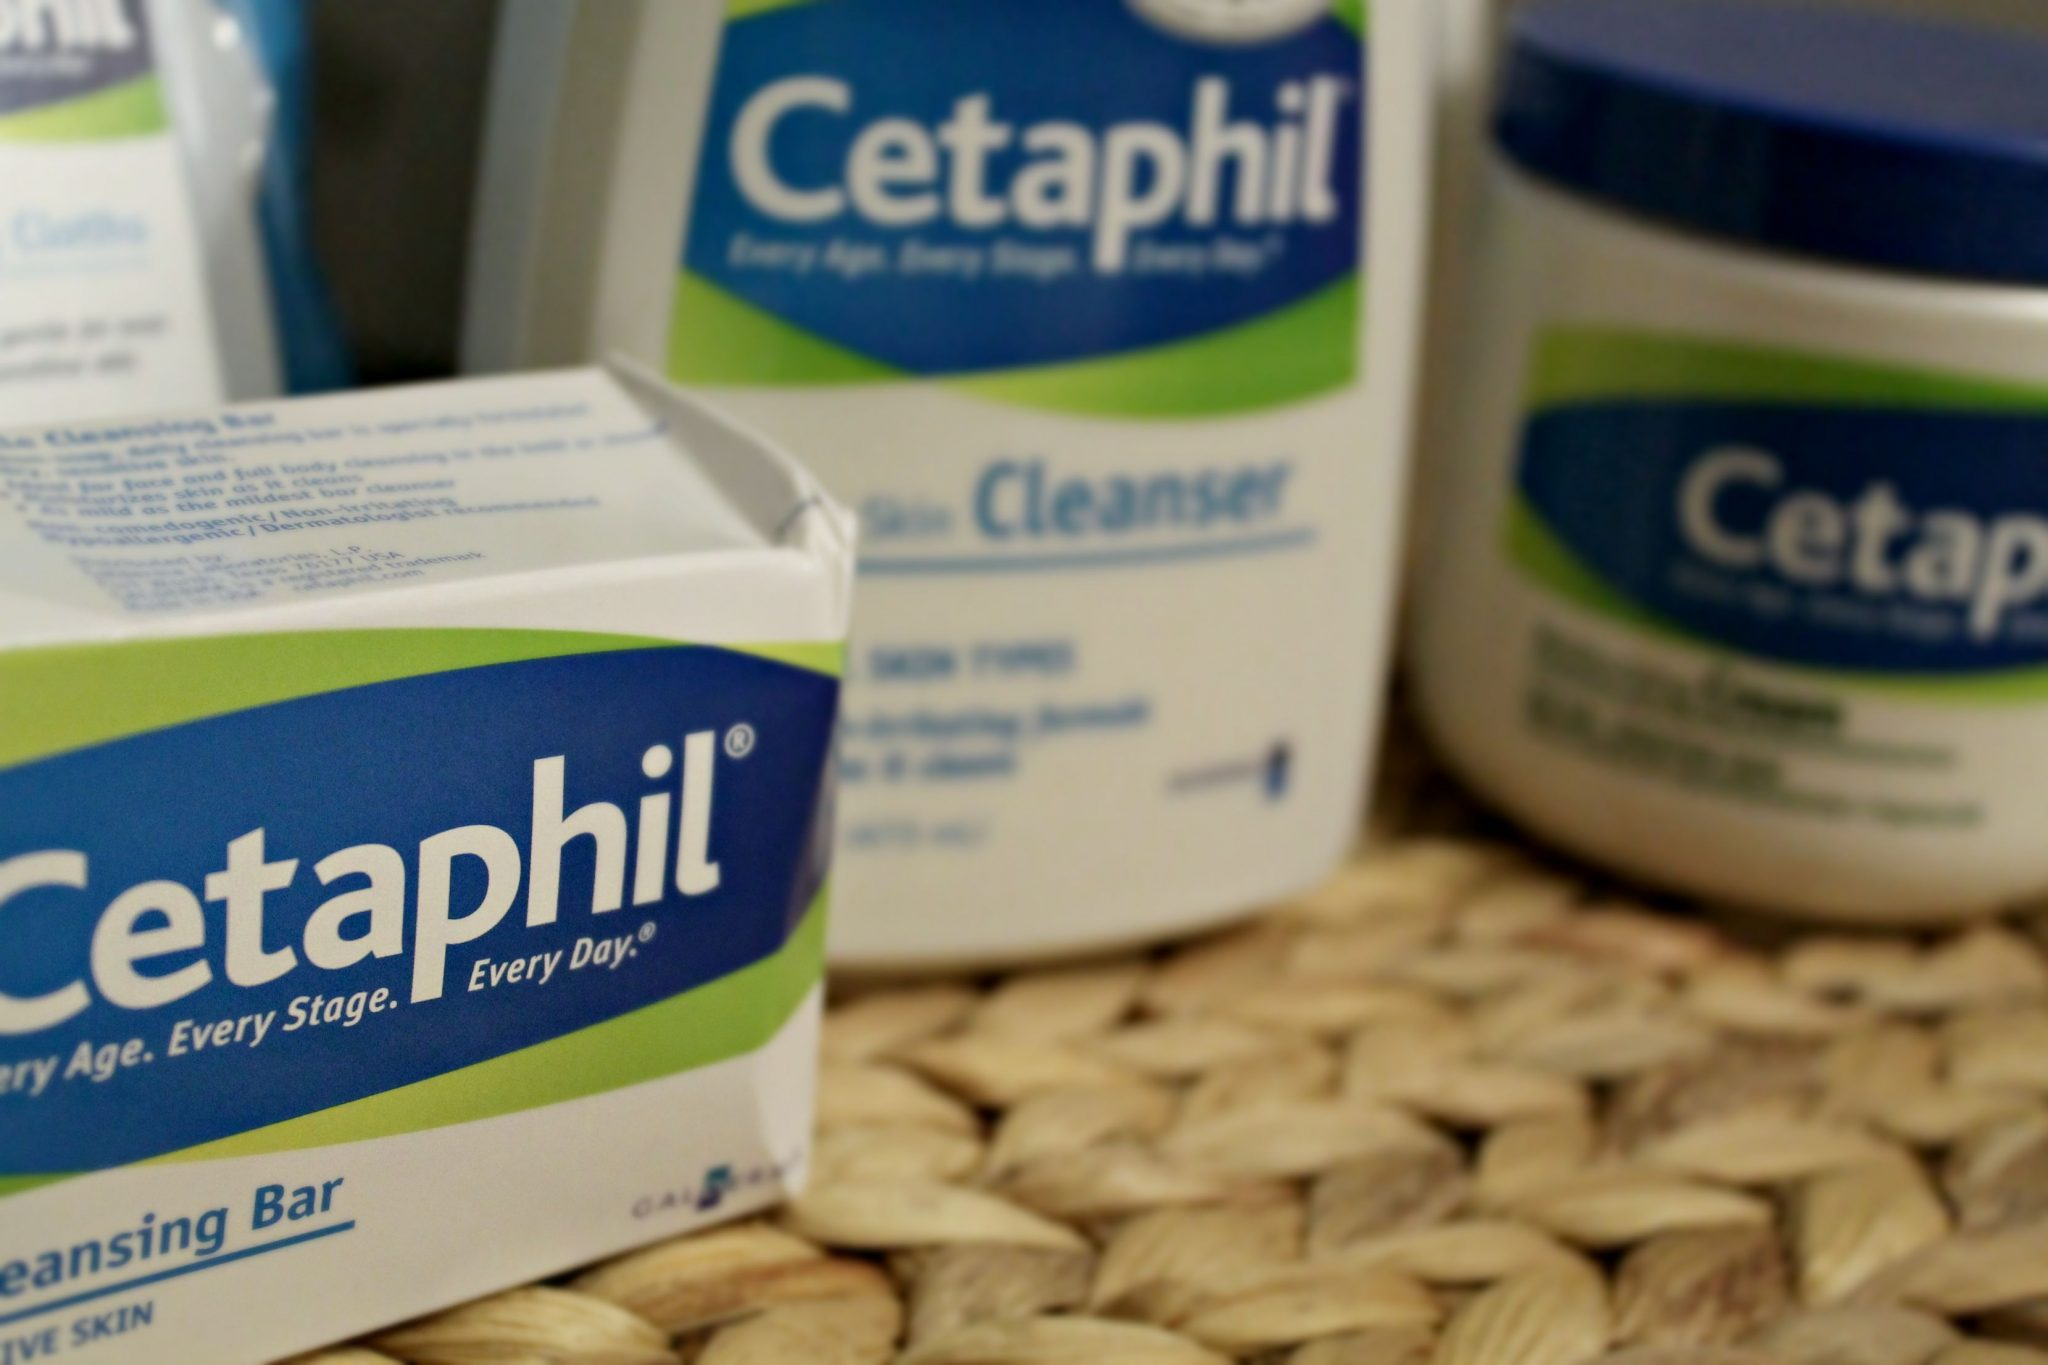 Everyday Skin with Cetaphil®